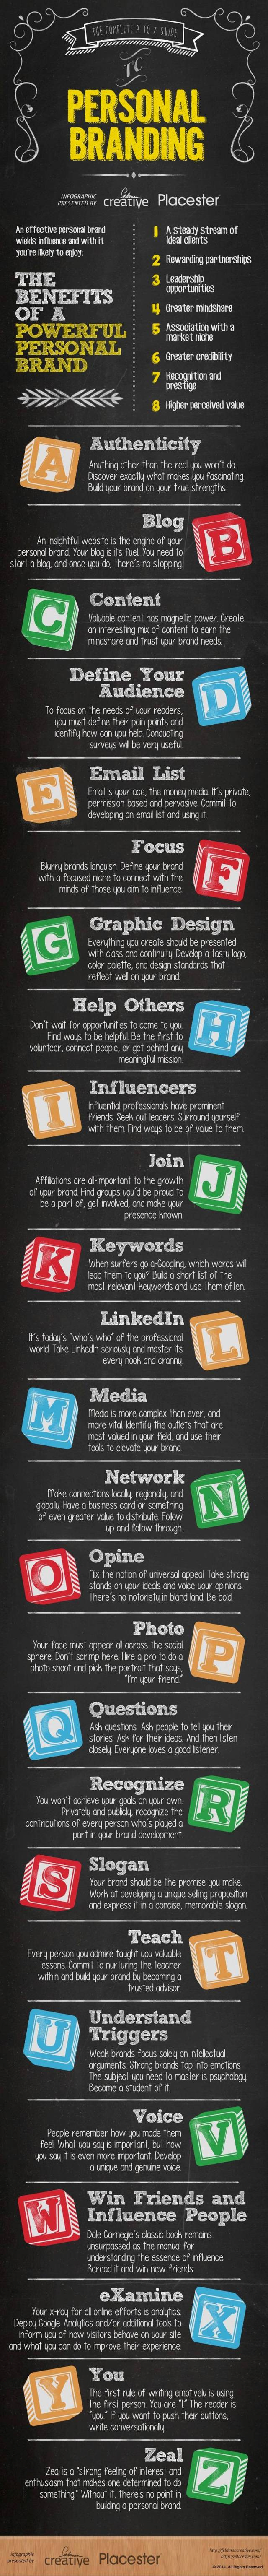 Personal branding A-to-z